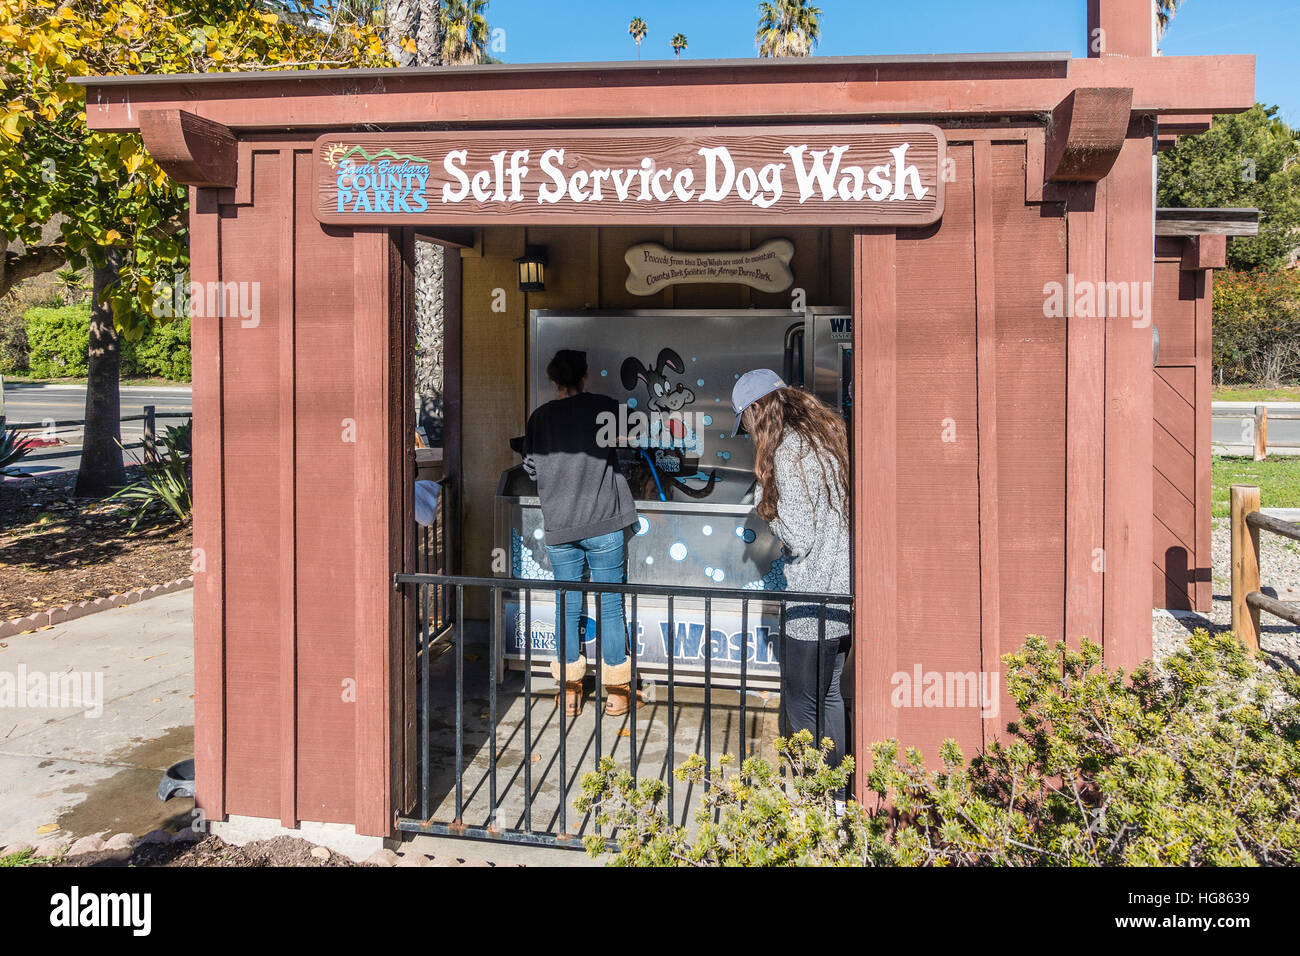 A female employee washes a dog at the county of santa barbara public a female employee washes a dog at the county of santa barbara public facility for dog washing at arroyo burro park solutioingenieria Images